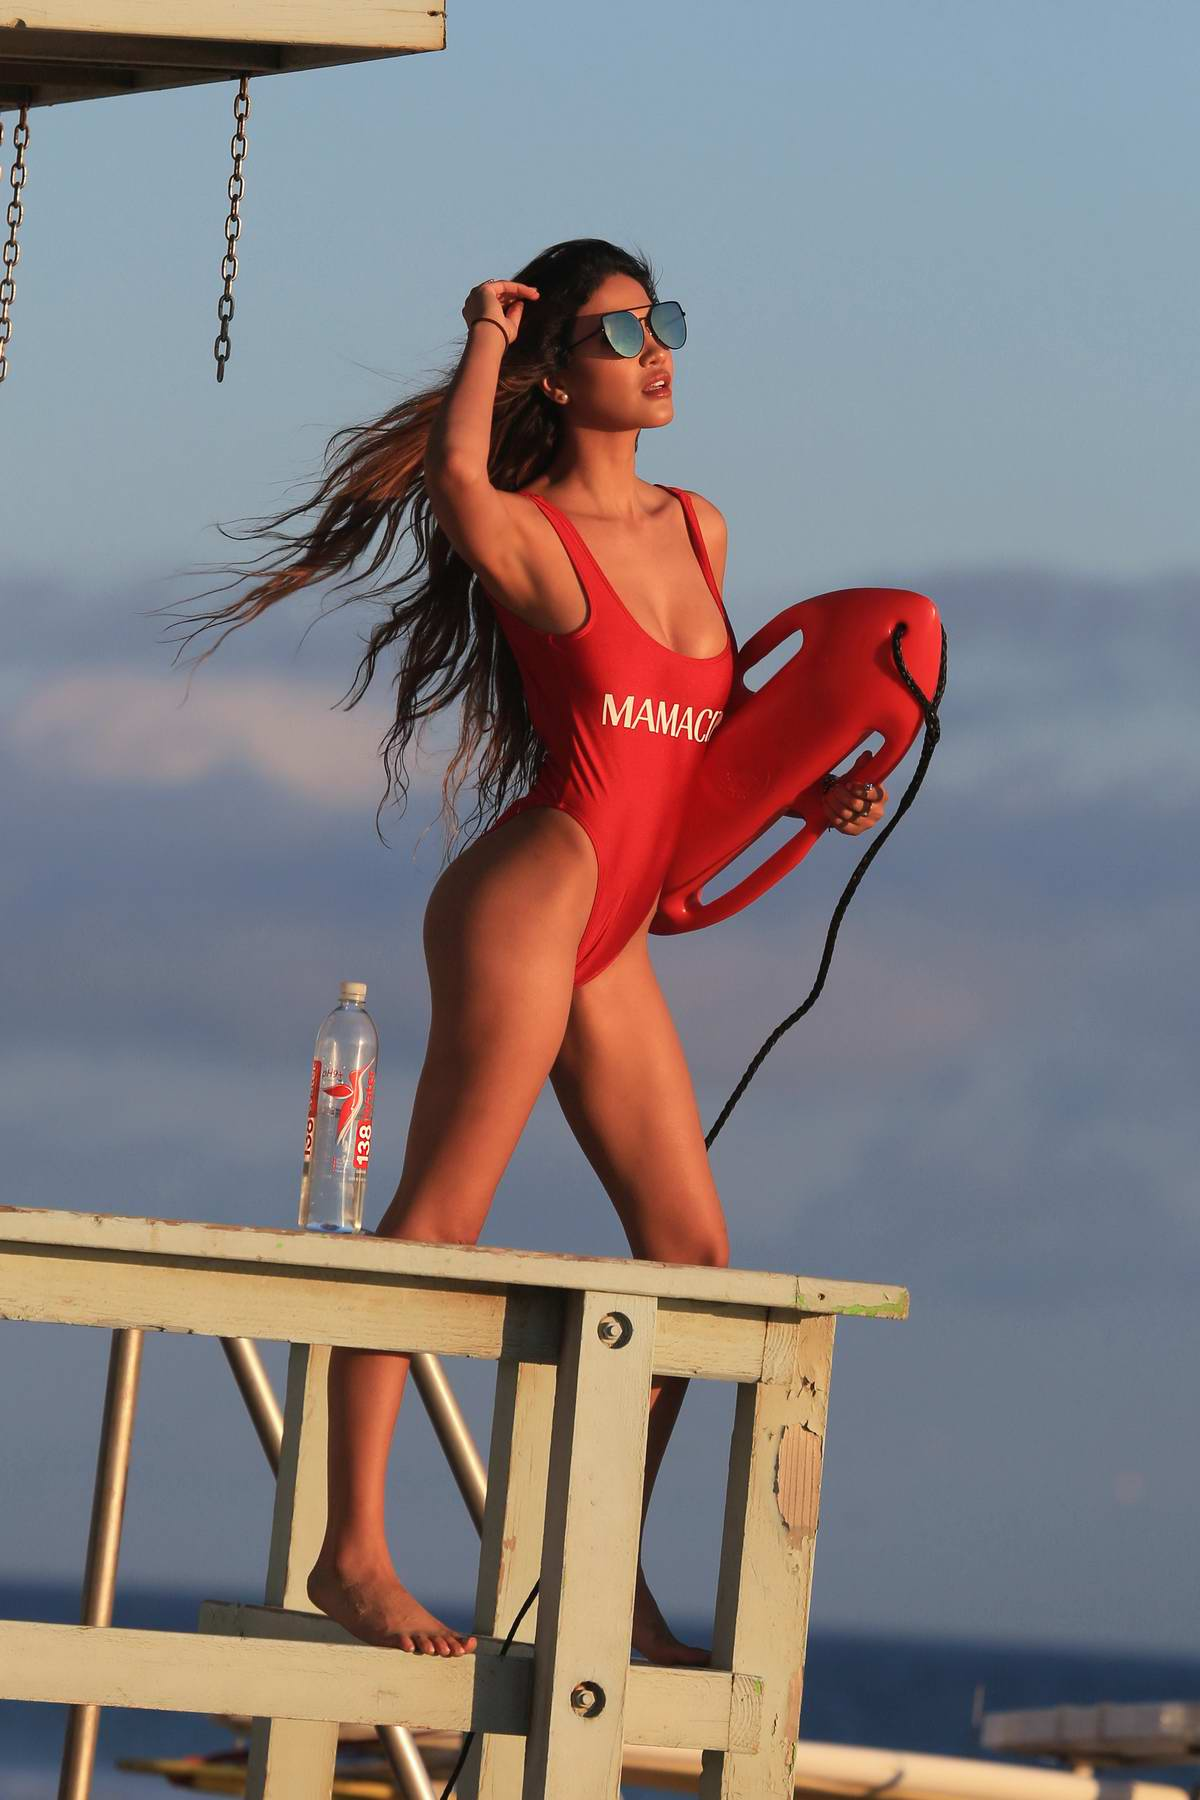 CJ Franco is red hot in Baywatch themed photoshoot for 138 Water in Malibu, California